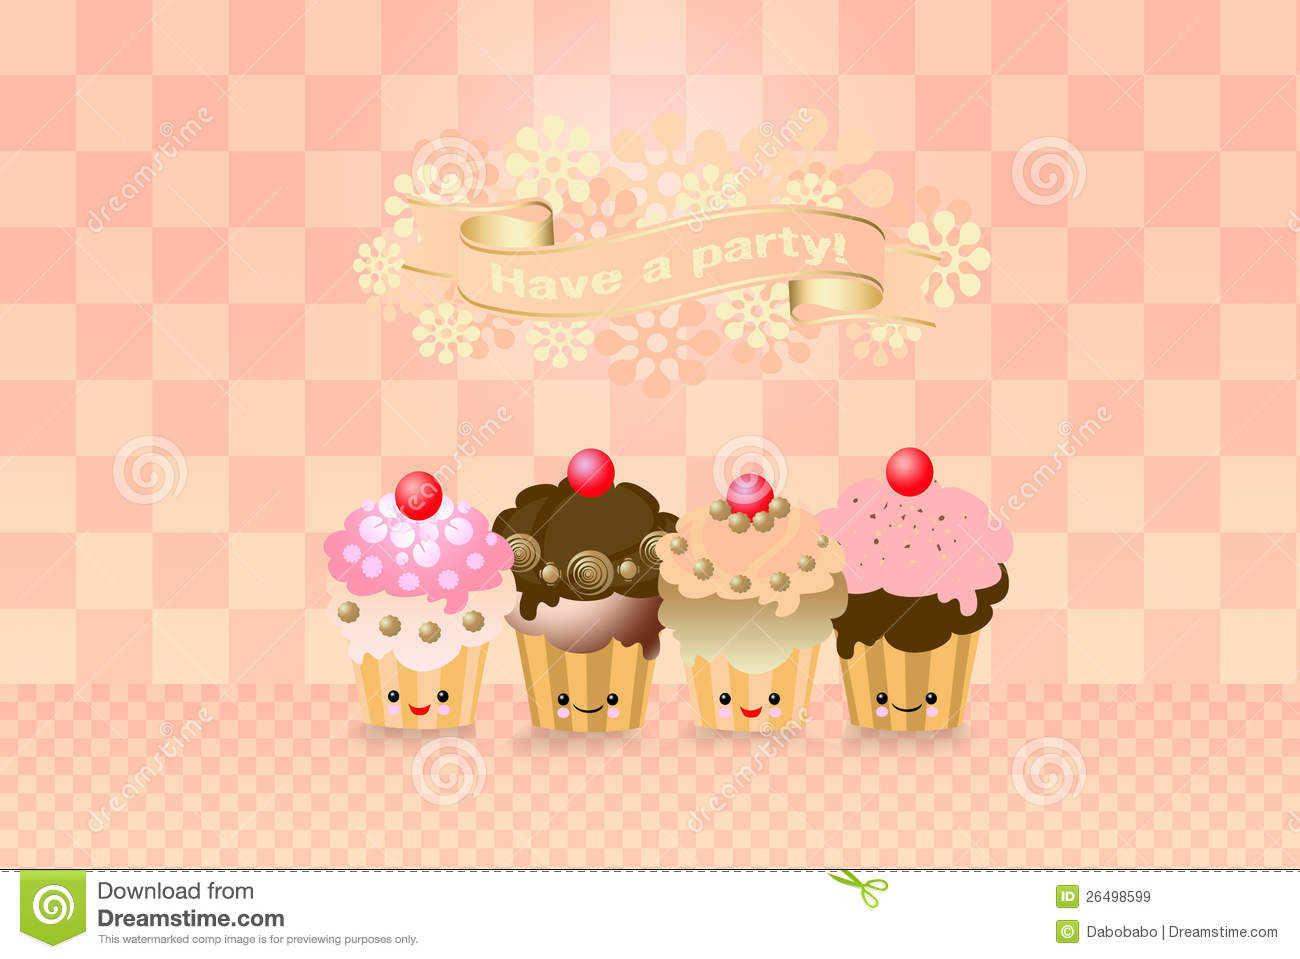 Cute Kawaii Cup Cake Royalty Free Stock Images - Image: 26498599